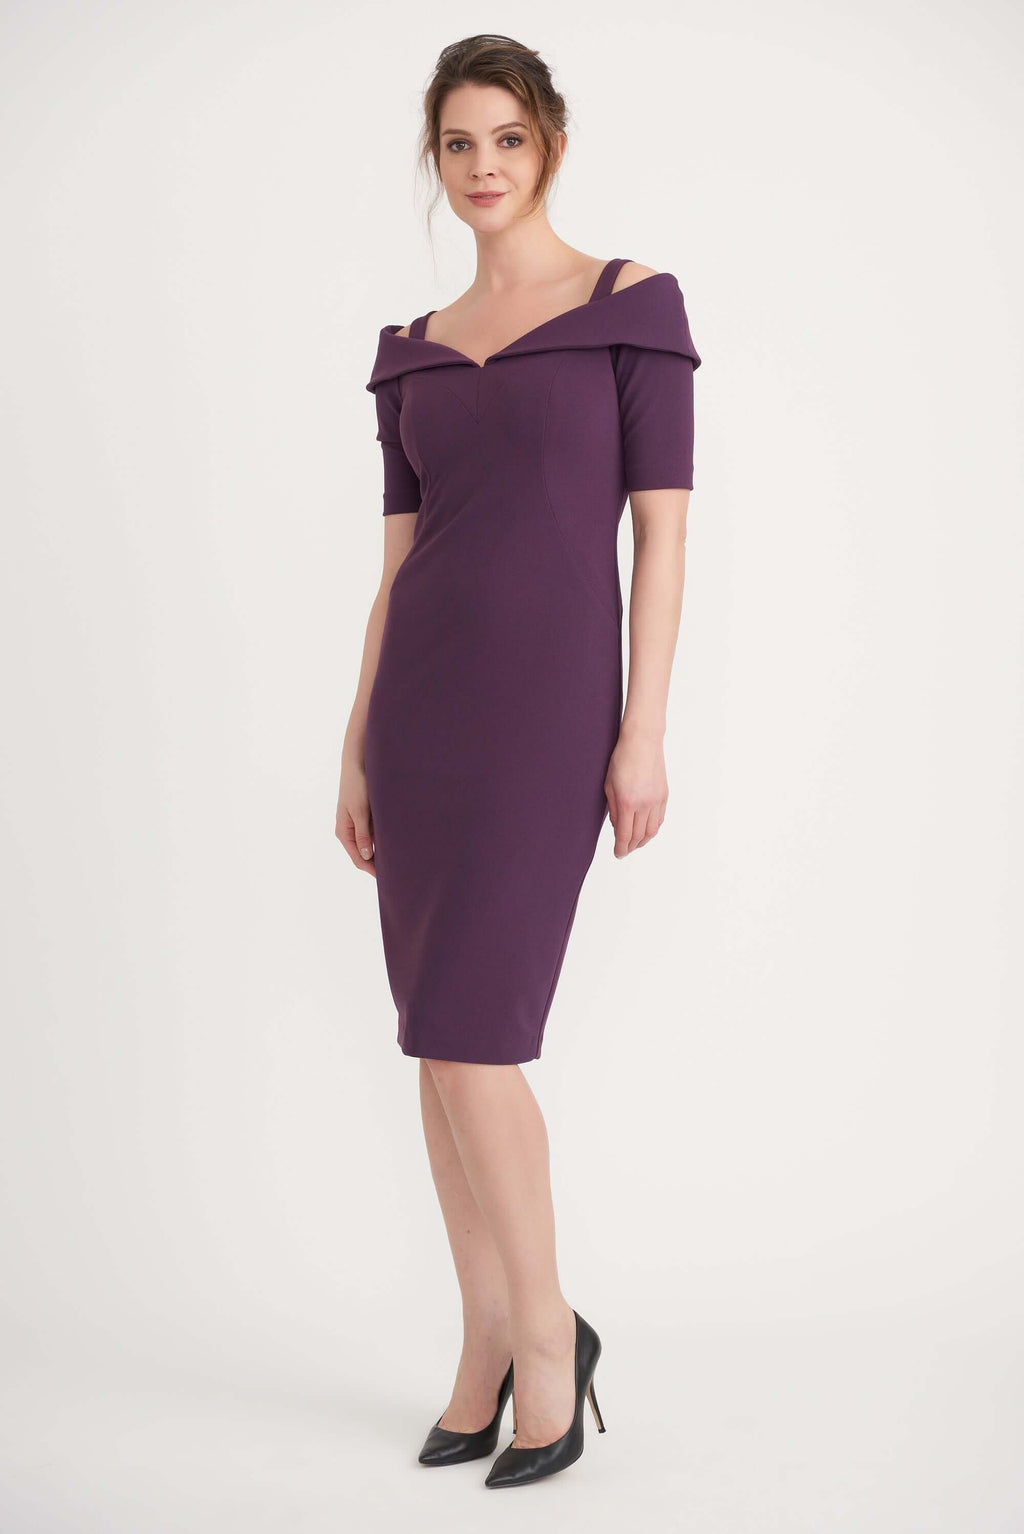 Joseph Ribkoff Cold Shoulder Amethyst Dress 203645